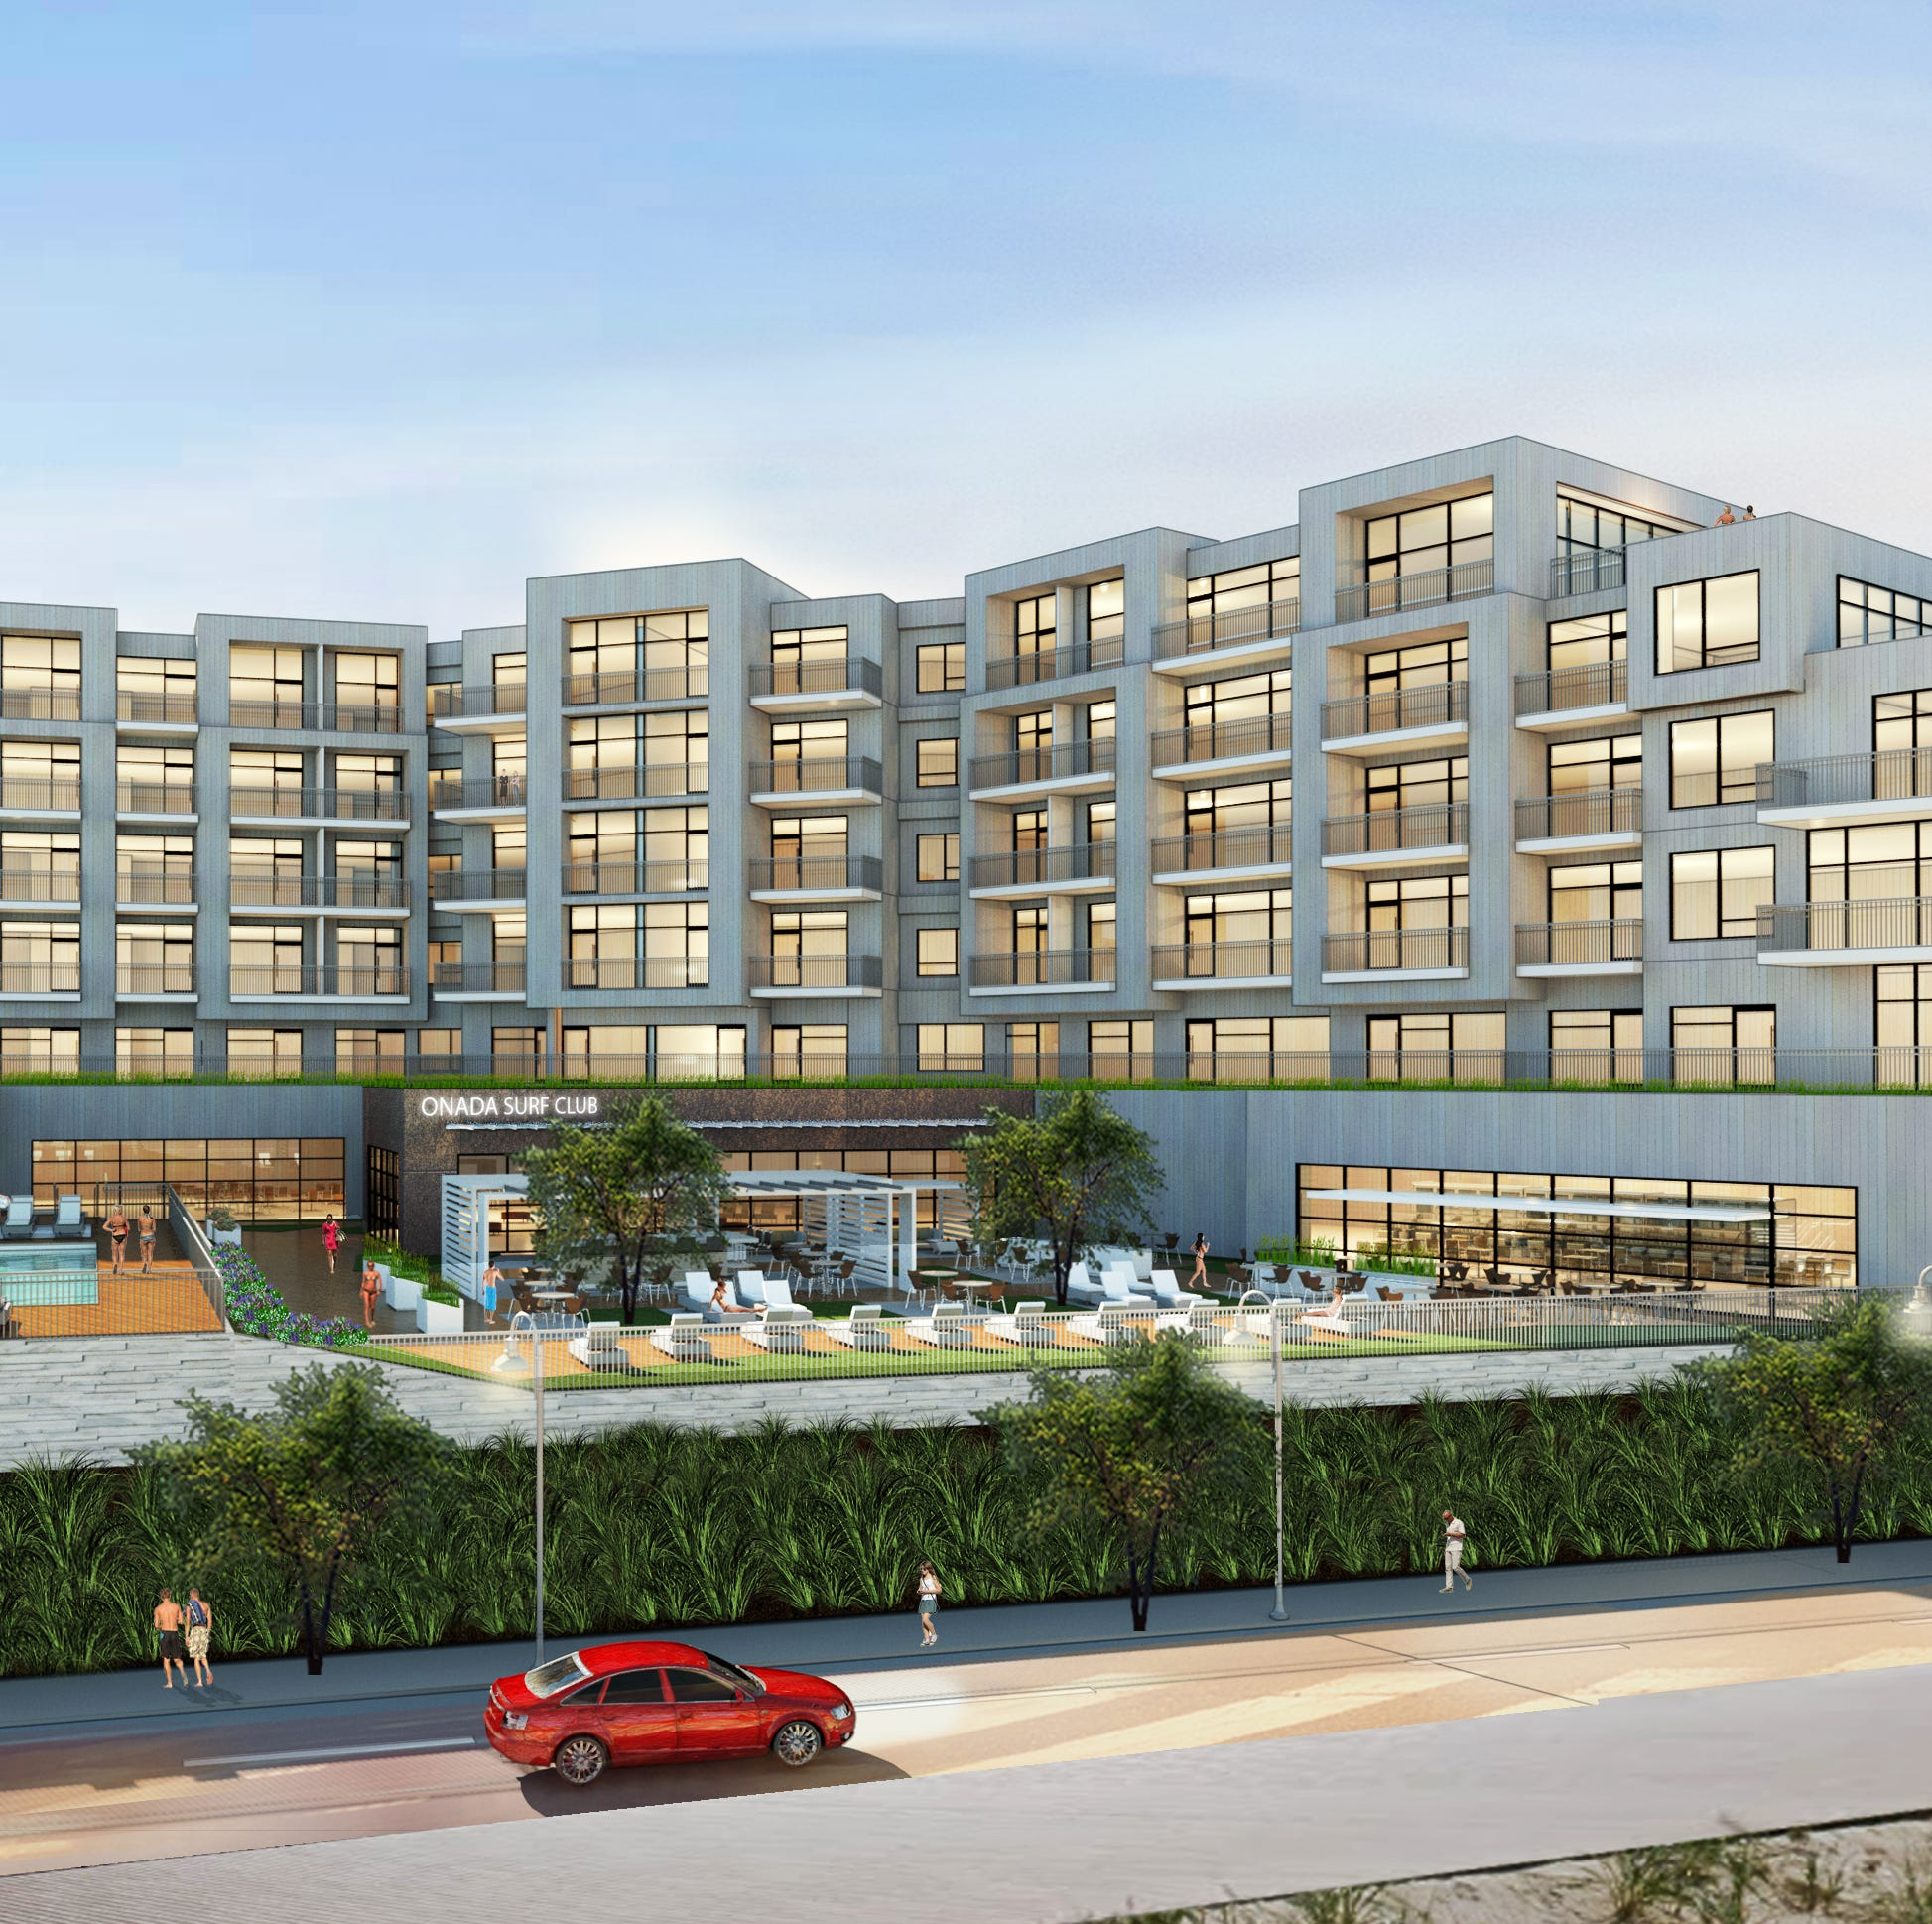 Long Branch approves Kushner Cos.' 102-room Onada Surf Club